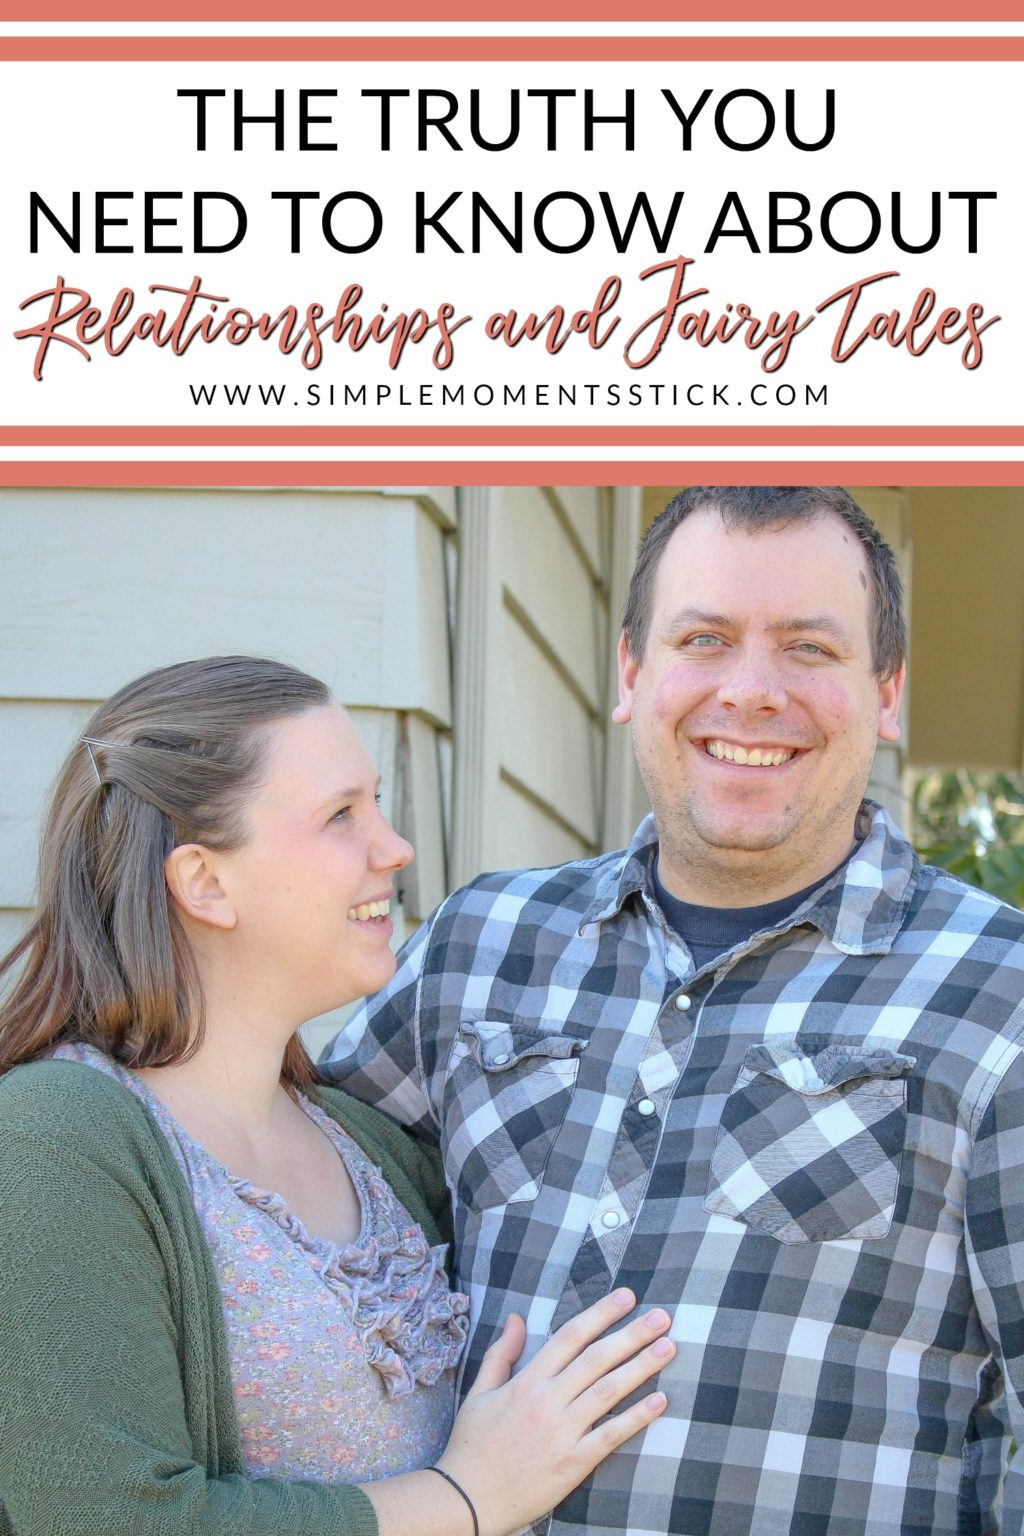 My relationship is not a fairytale.  Let's dig in and find out what's fairytale love.